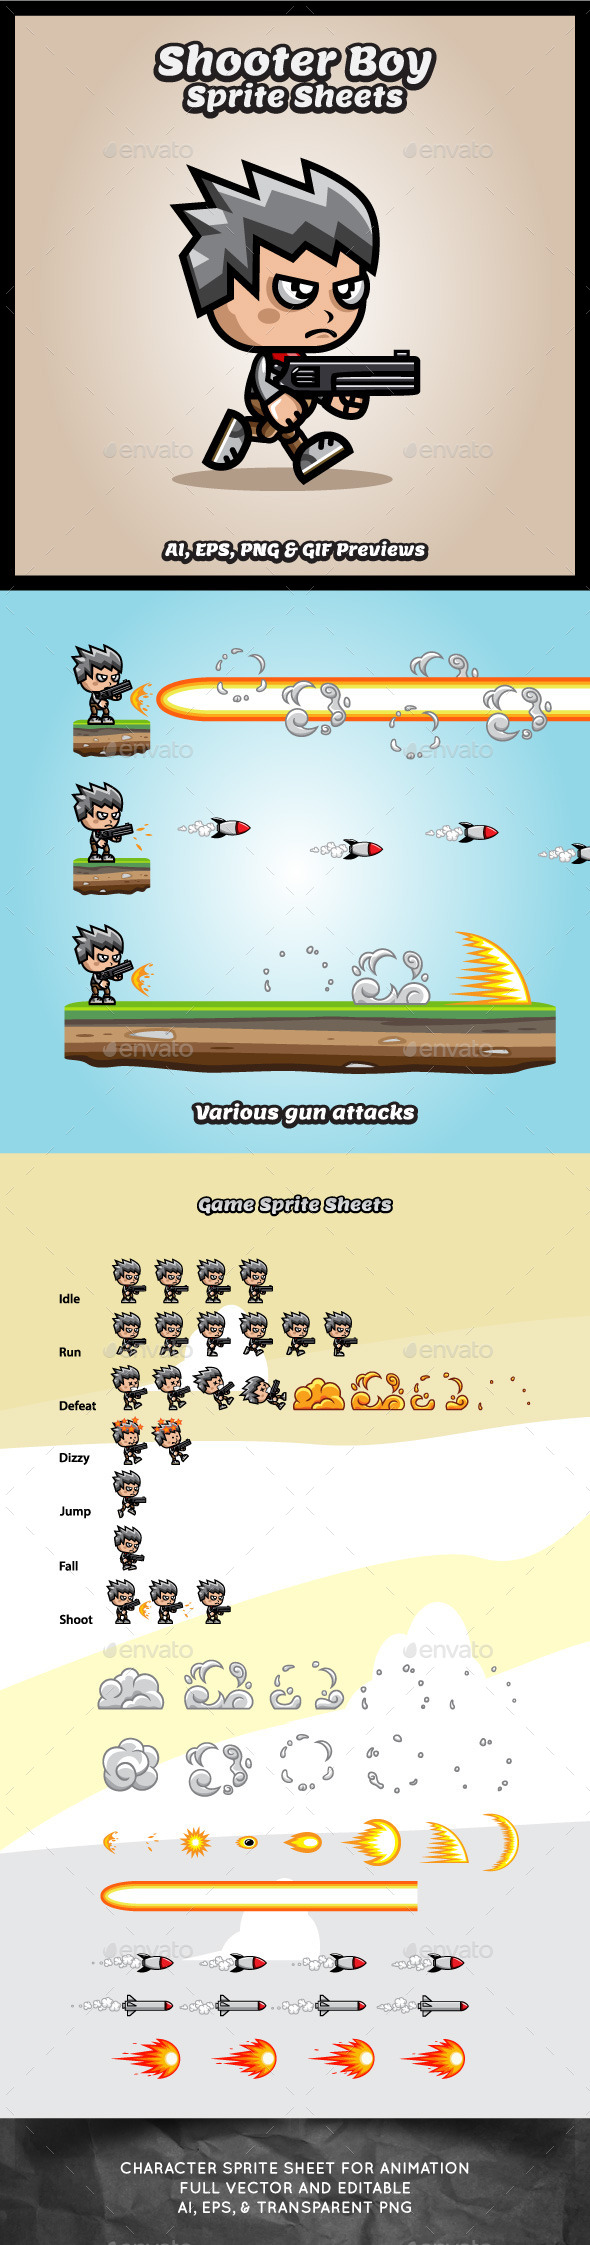 Shooter Boy Game Character Sprite Sheets - Sprites Game Assets